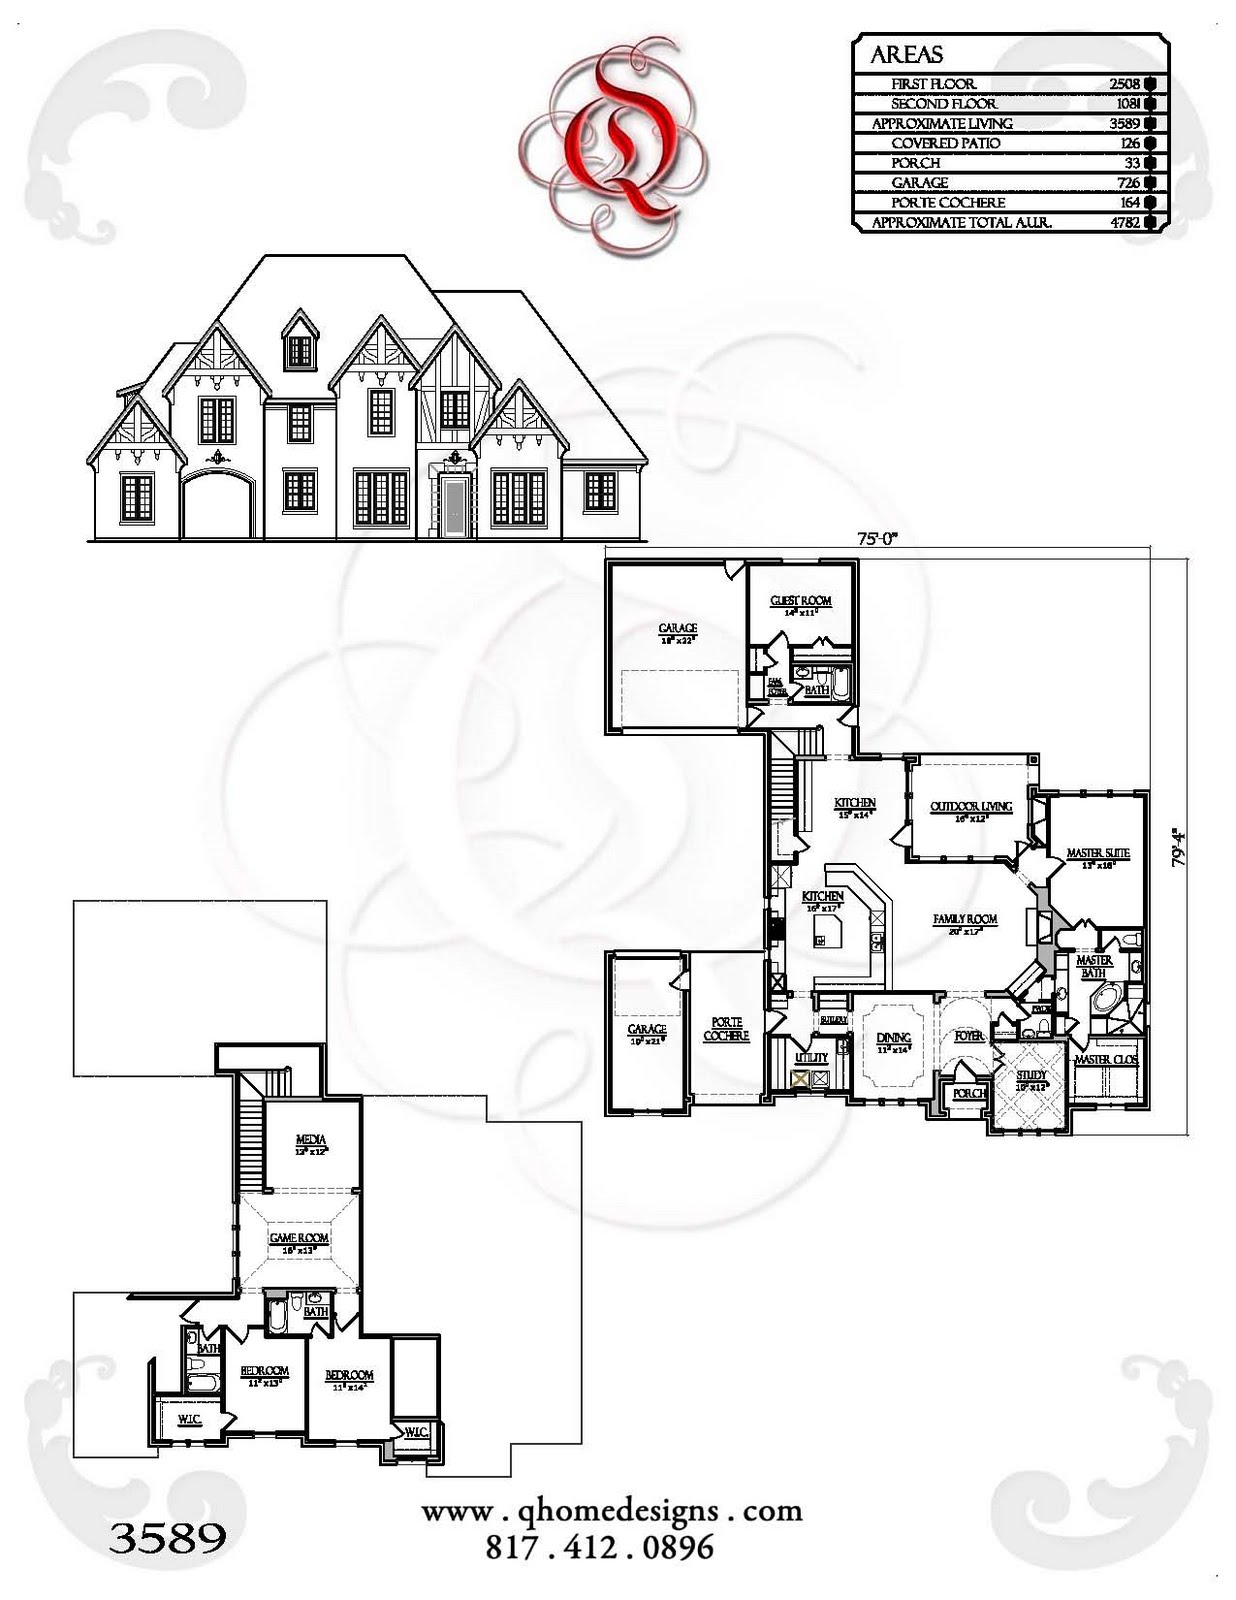 House Plans with Porte Cochere